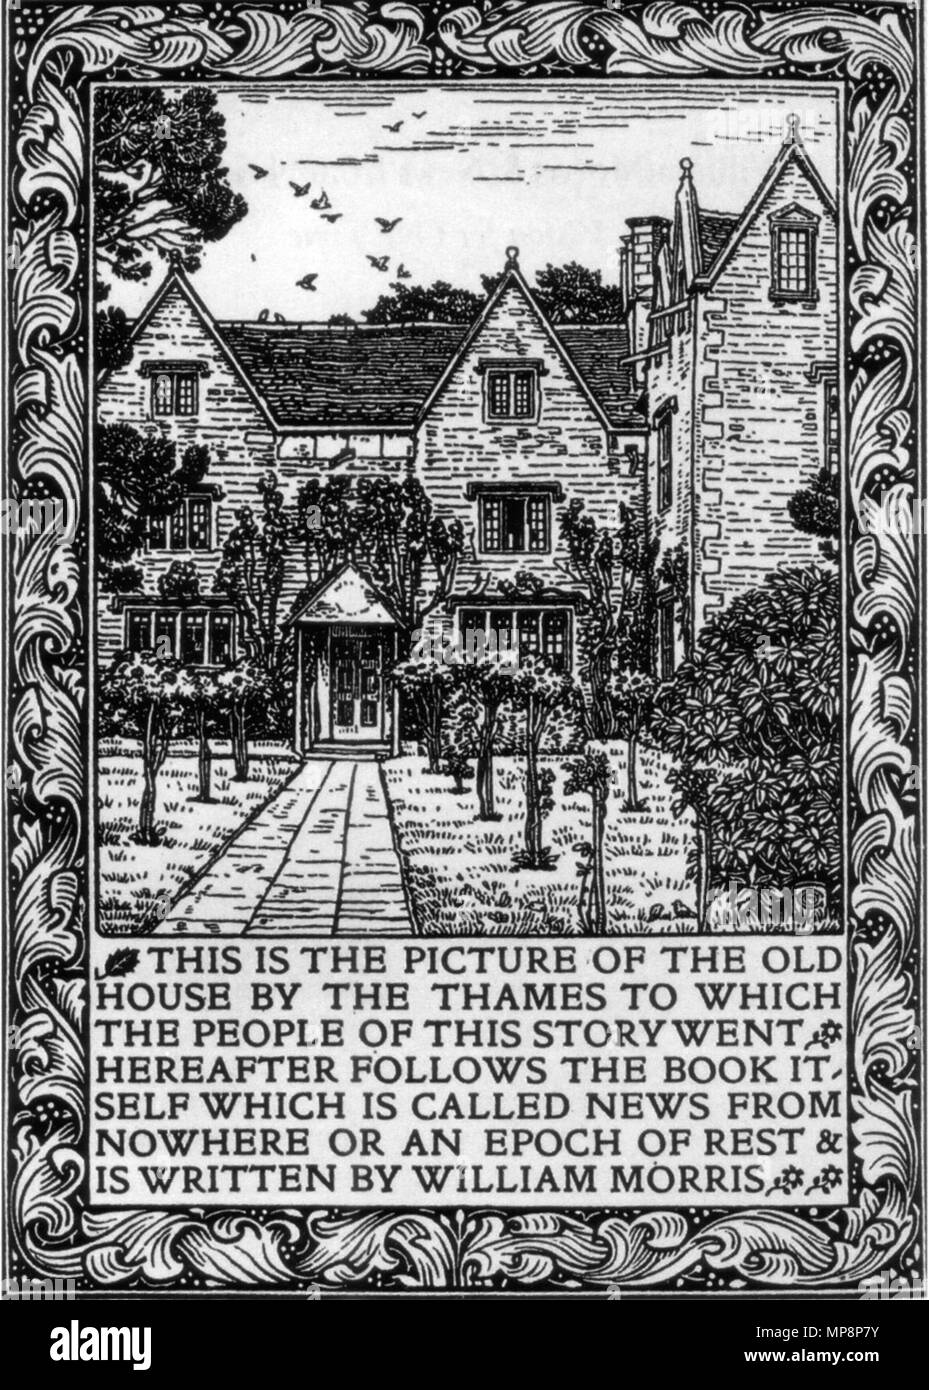 . English: Kelmscott Manor depicted in the frontispiece to the 1893 Kelmscott Press edition of William Morris's News from Nowhere . 1893.   William Morris (1834–1896)   Alternative names William M. Morris  Description British painter, designer, architect and writer  Date of birth/death 24 March 1834 3 October 1896  Location of birth/death Walthamstow (Essex) London-Hammersmith  Work location Deutsch: Südengland English: Southern England  Authority control  : Q182589 VIAF:22146194 ISNI:0000 0001 2123 5747 ULAN:500030629 LCCN:n78095326 NLA:35363838 WorldCat 762 Kelmscott Manor News fro Stock Photo